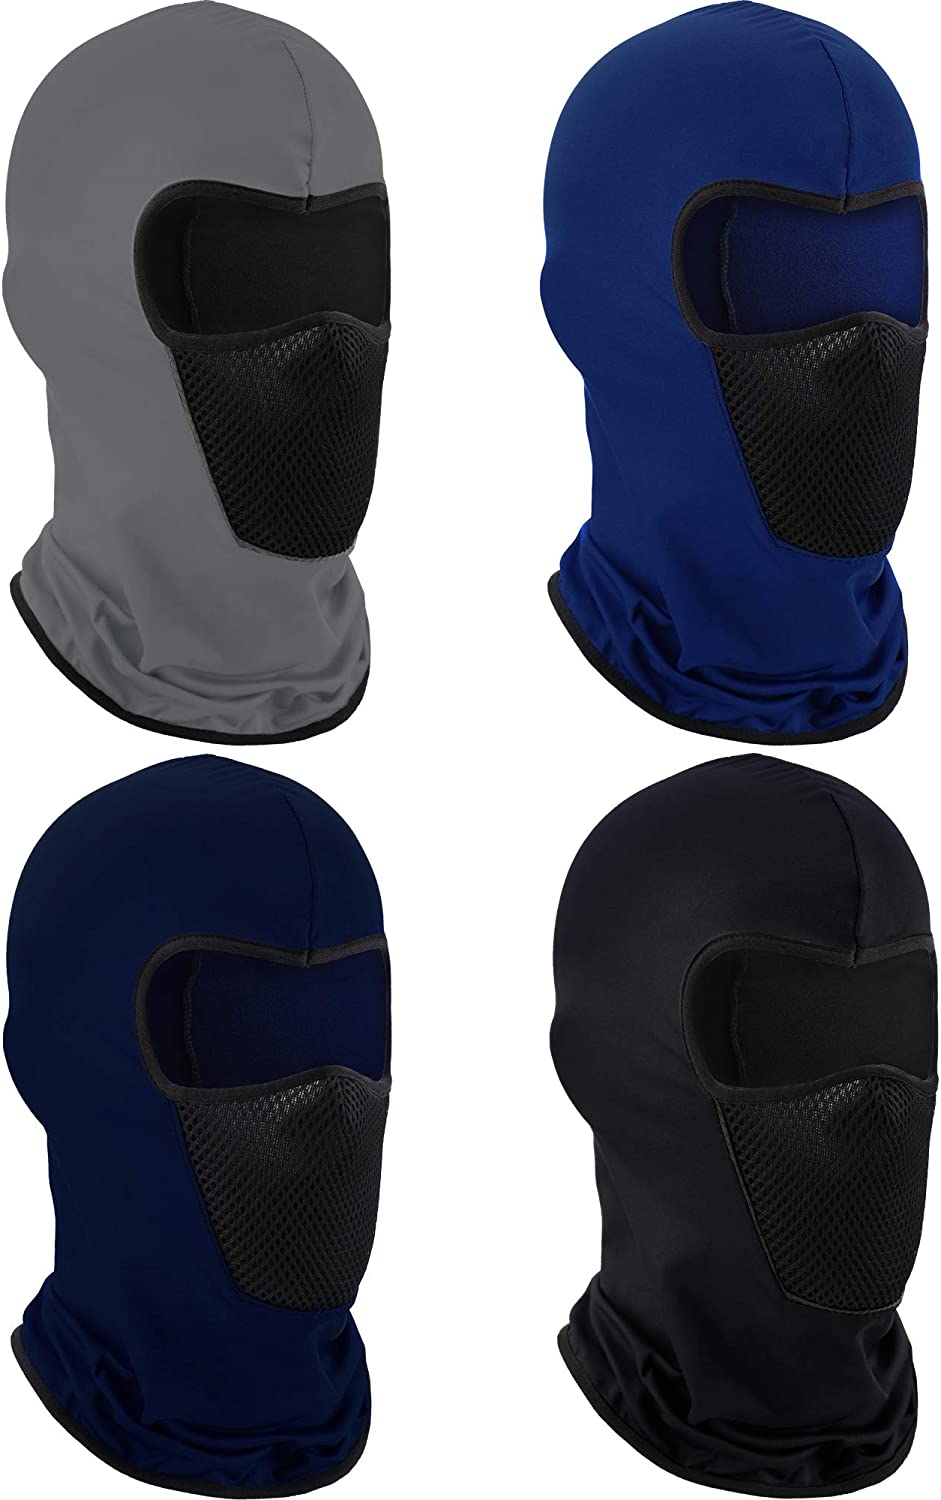 4 Pieces Summer Balaclava Face Mask Sun Dust Windproof Protection Mask Breathable Full Face Cover for Outdoor Activities(Solid Colors)